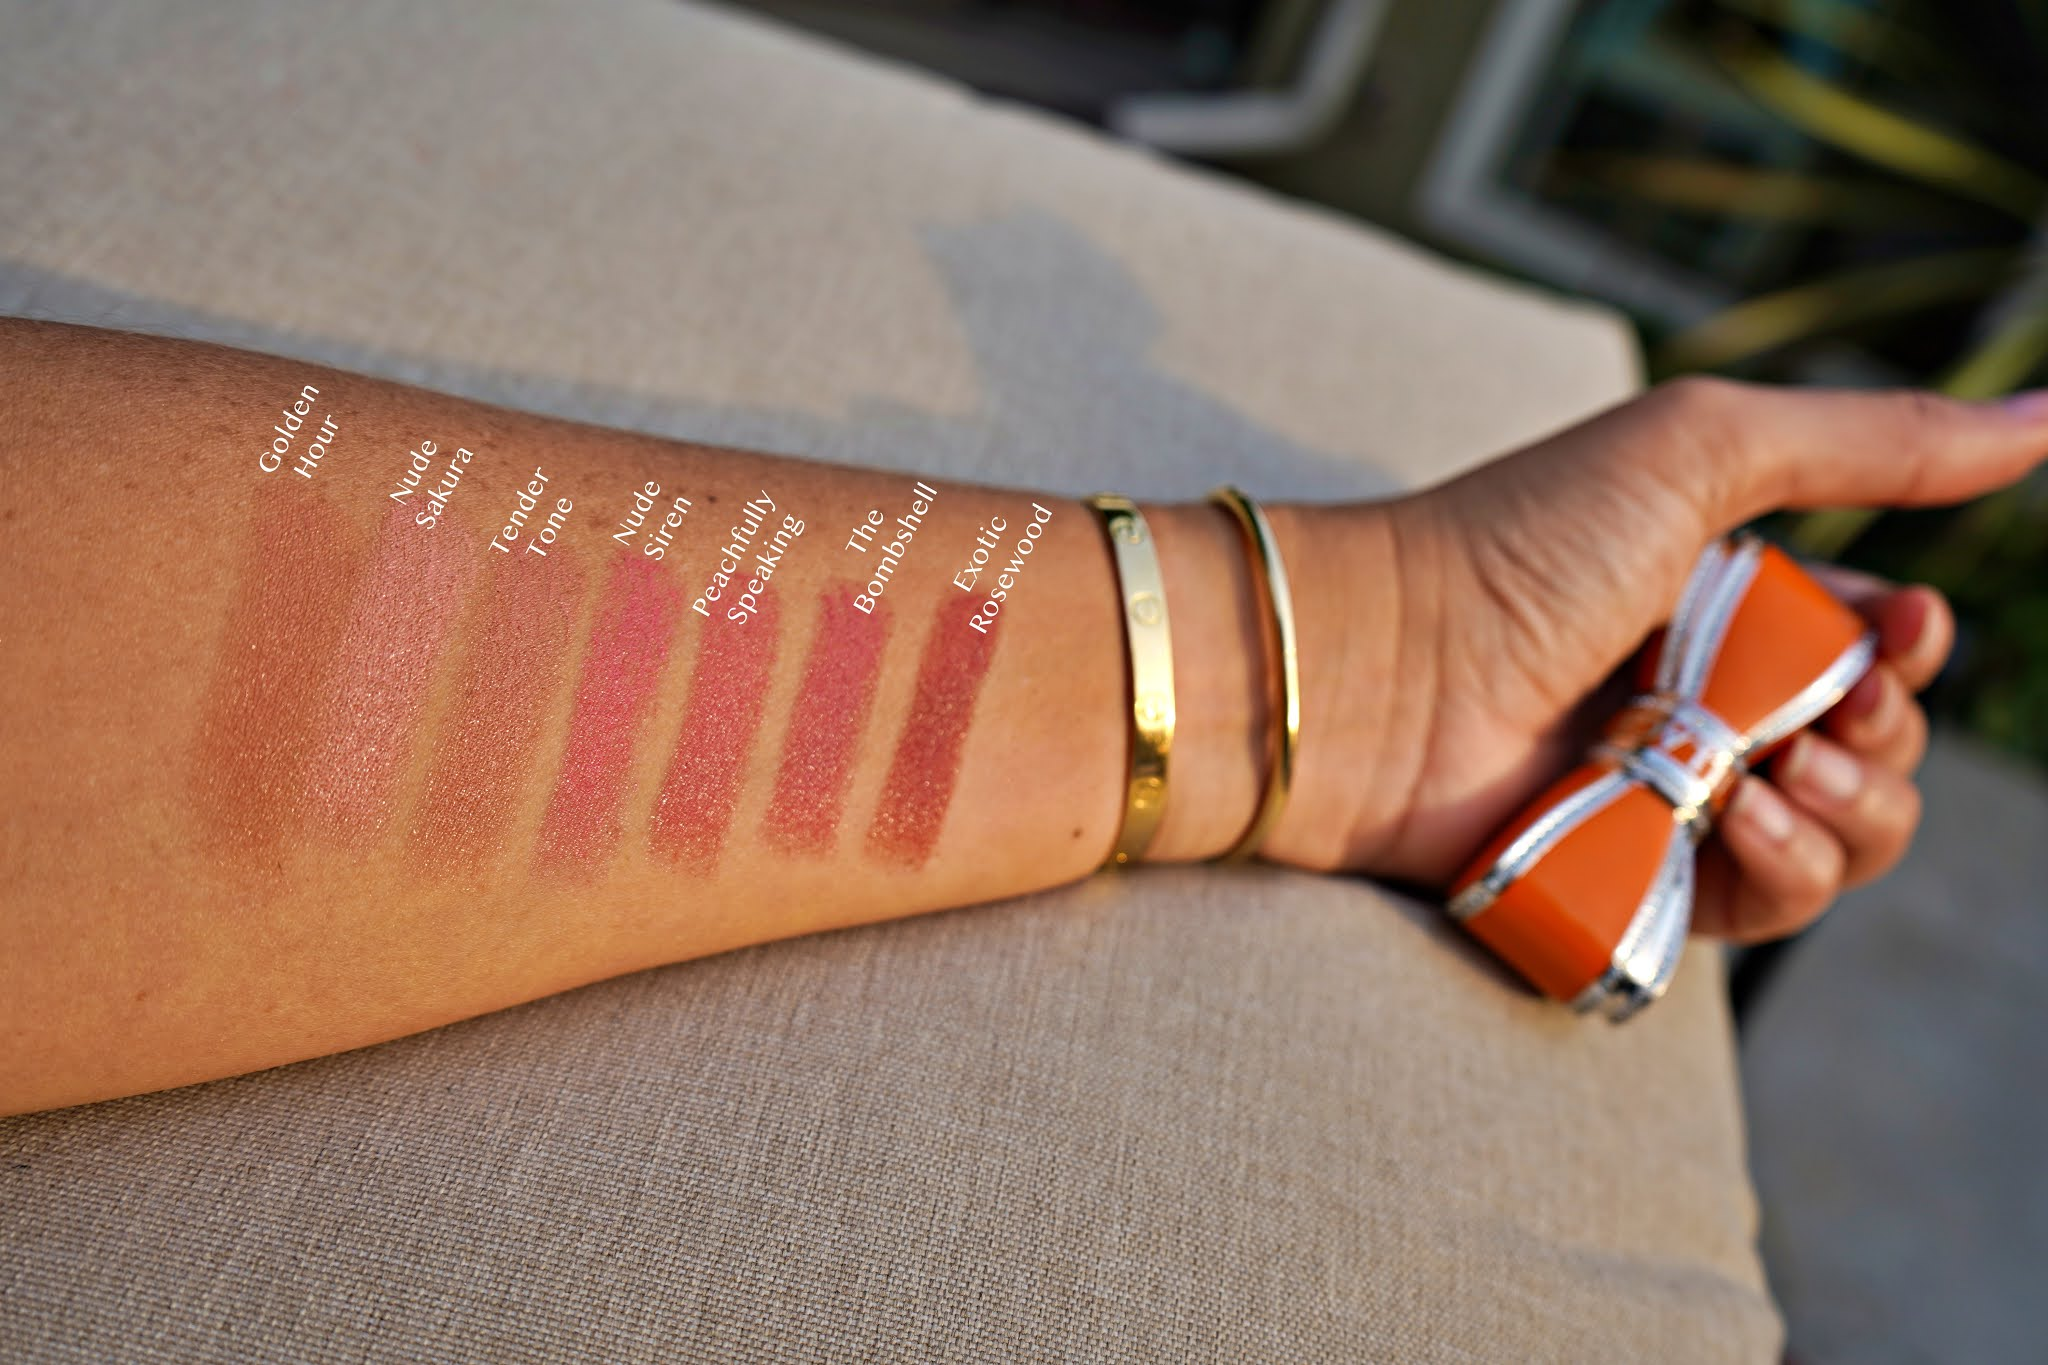 House of Sillage Nudes Collection lipstick swatches